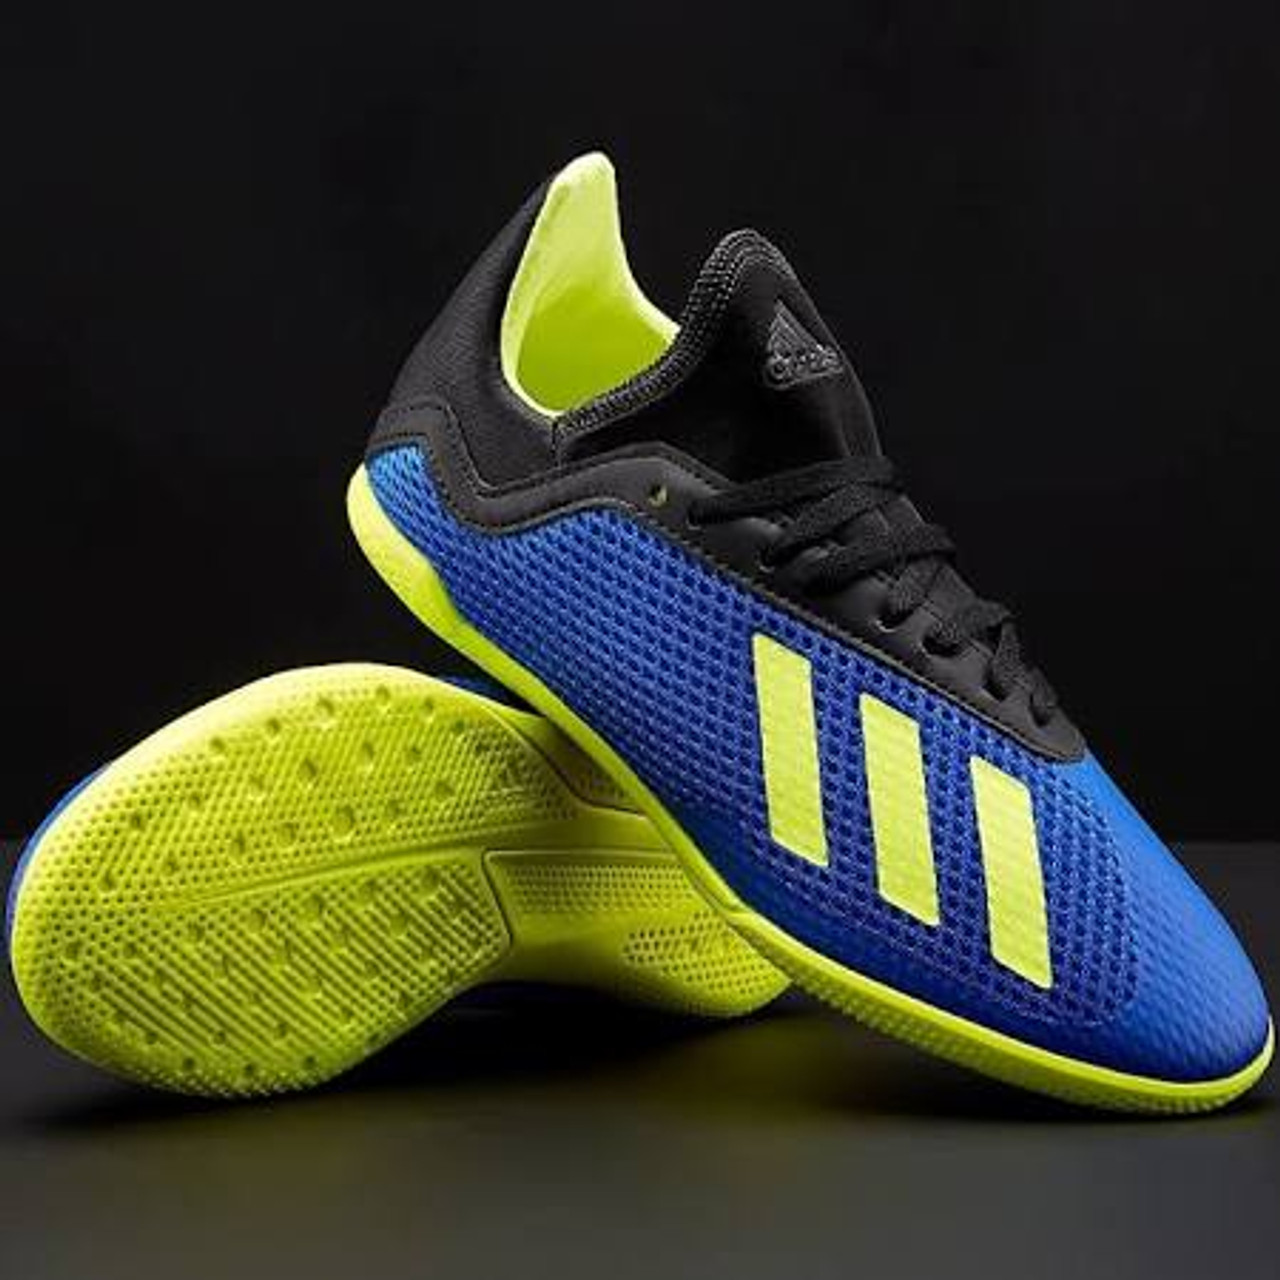 sale retailer 73ee7 245d1 ADIDAS X TANGO 18.3 IN J BLUE/SOLAR YELLOW